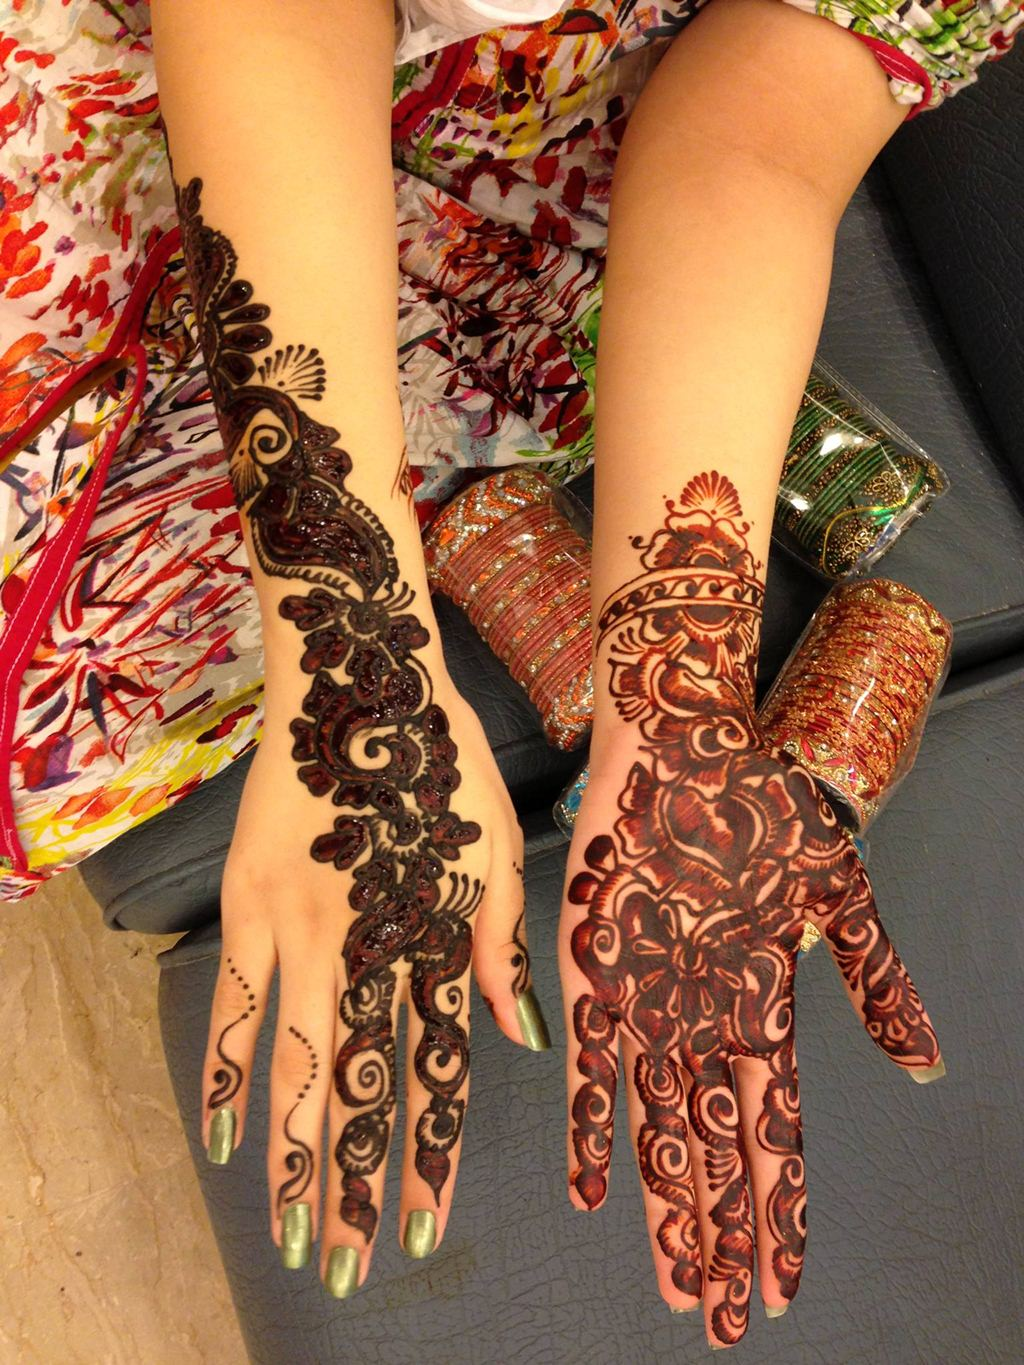 Cute Henna Wallpapers Bridal Mehndi Day Henna Designs For Girls Xcitefun Net